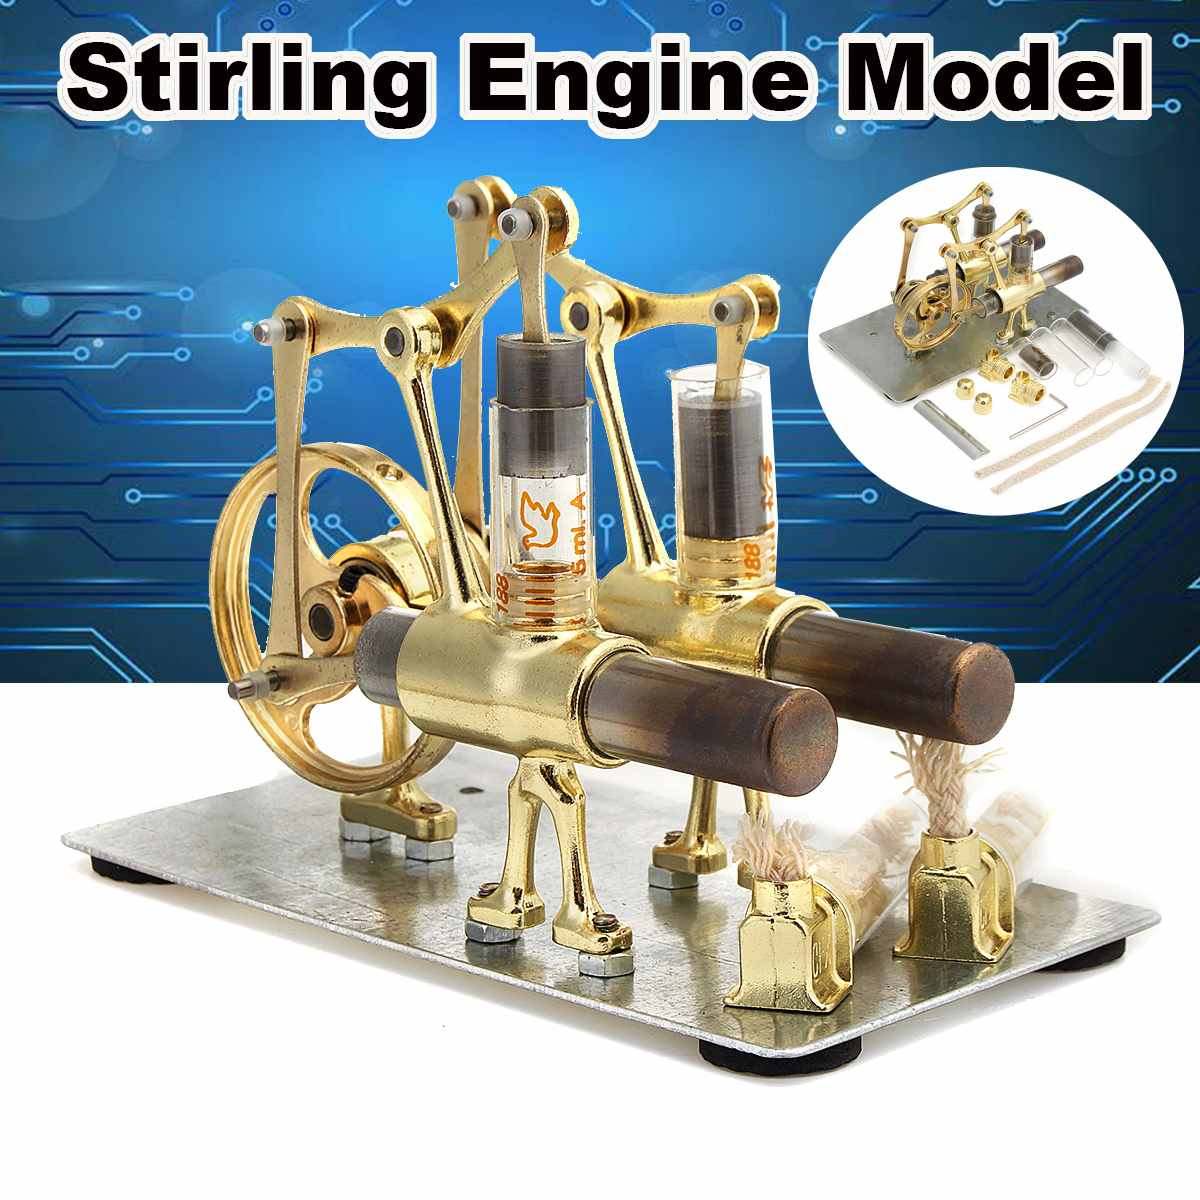 2019 New Double Cylinder Stirling Engine Motor Model Science Experiment Kit Set For Children Gift Collection